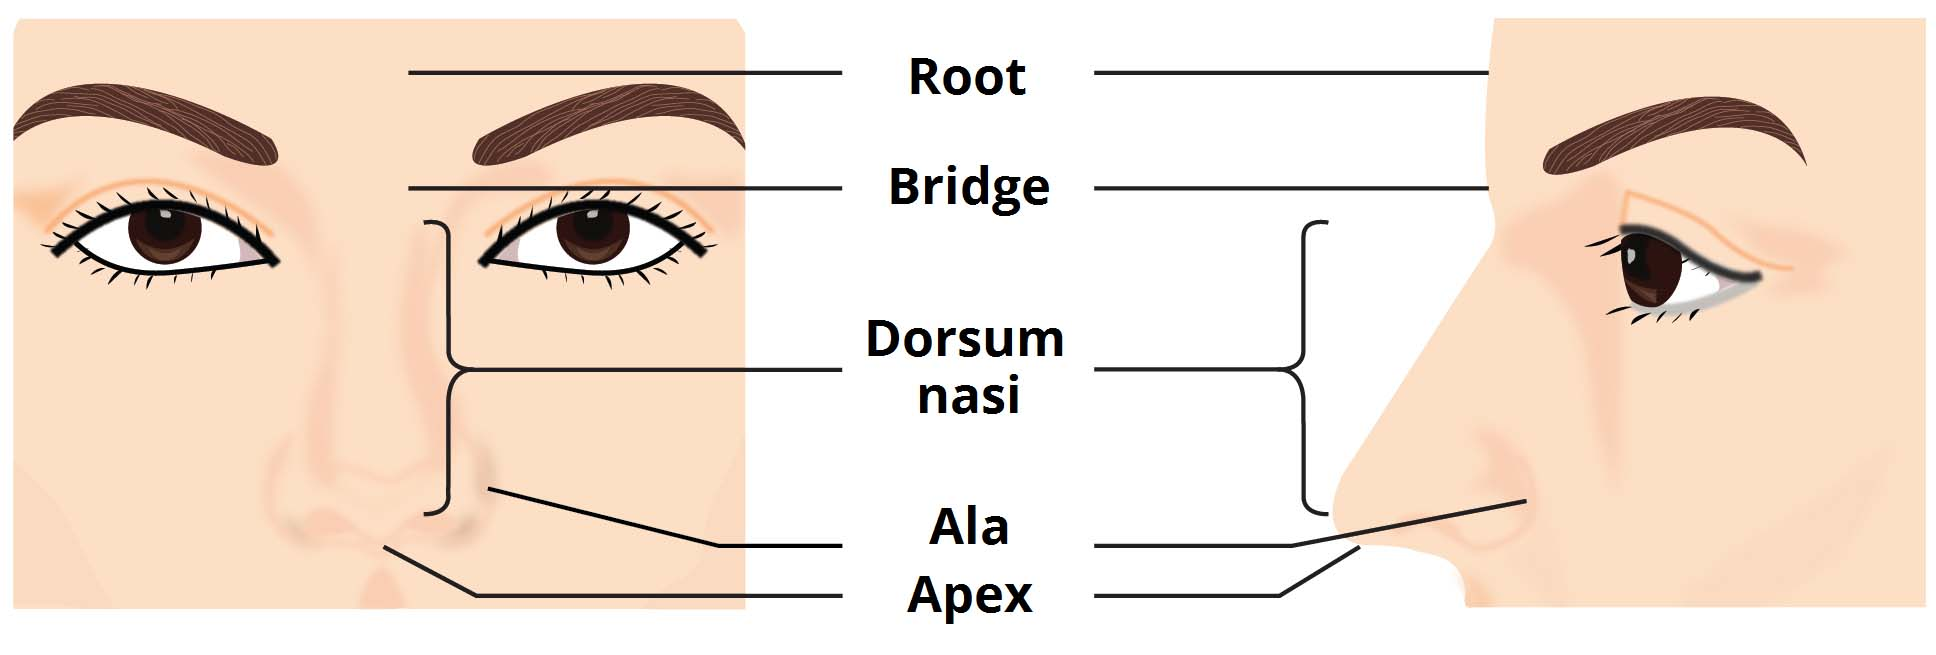 hight resolution of fig 1 surface appearance of the nose